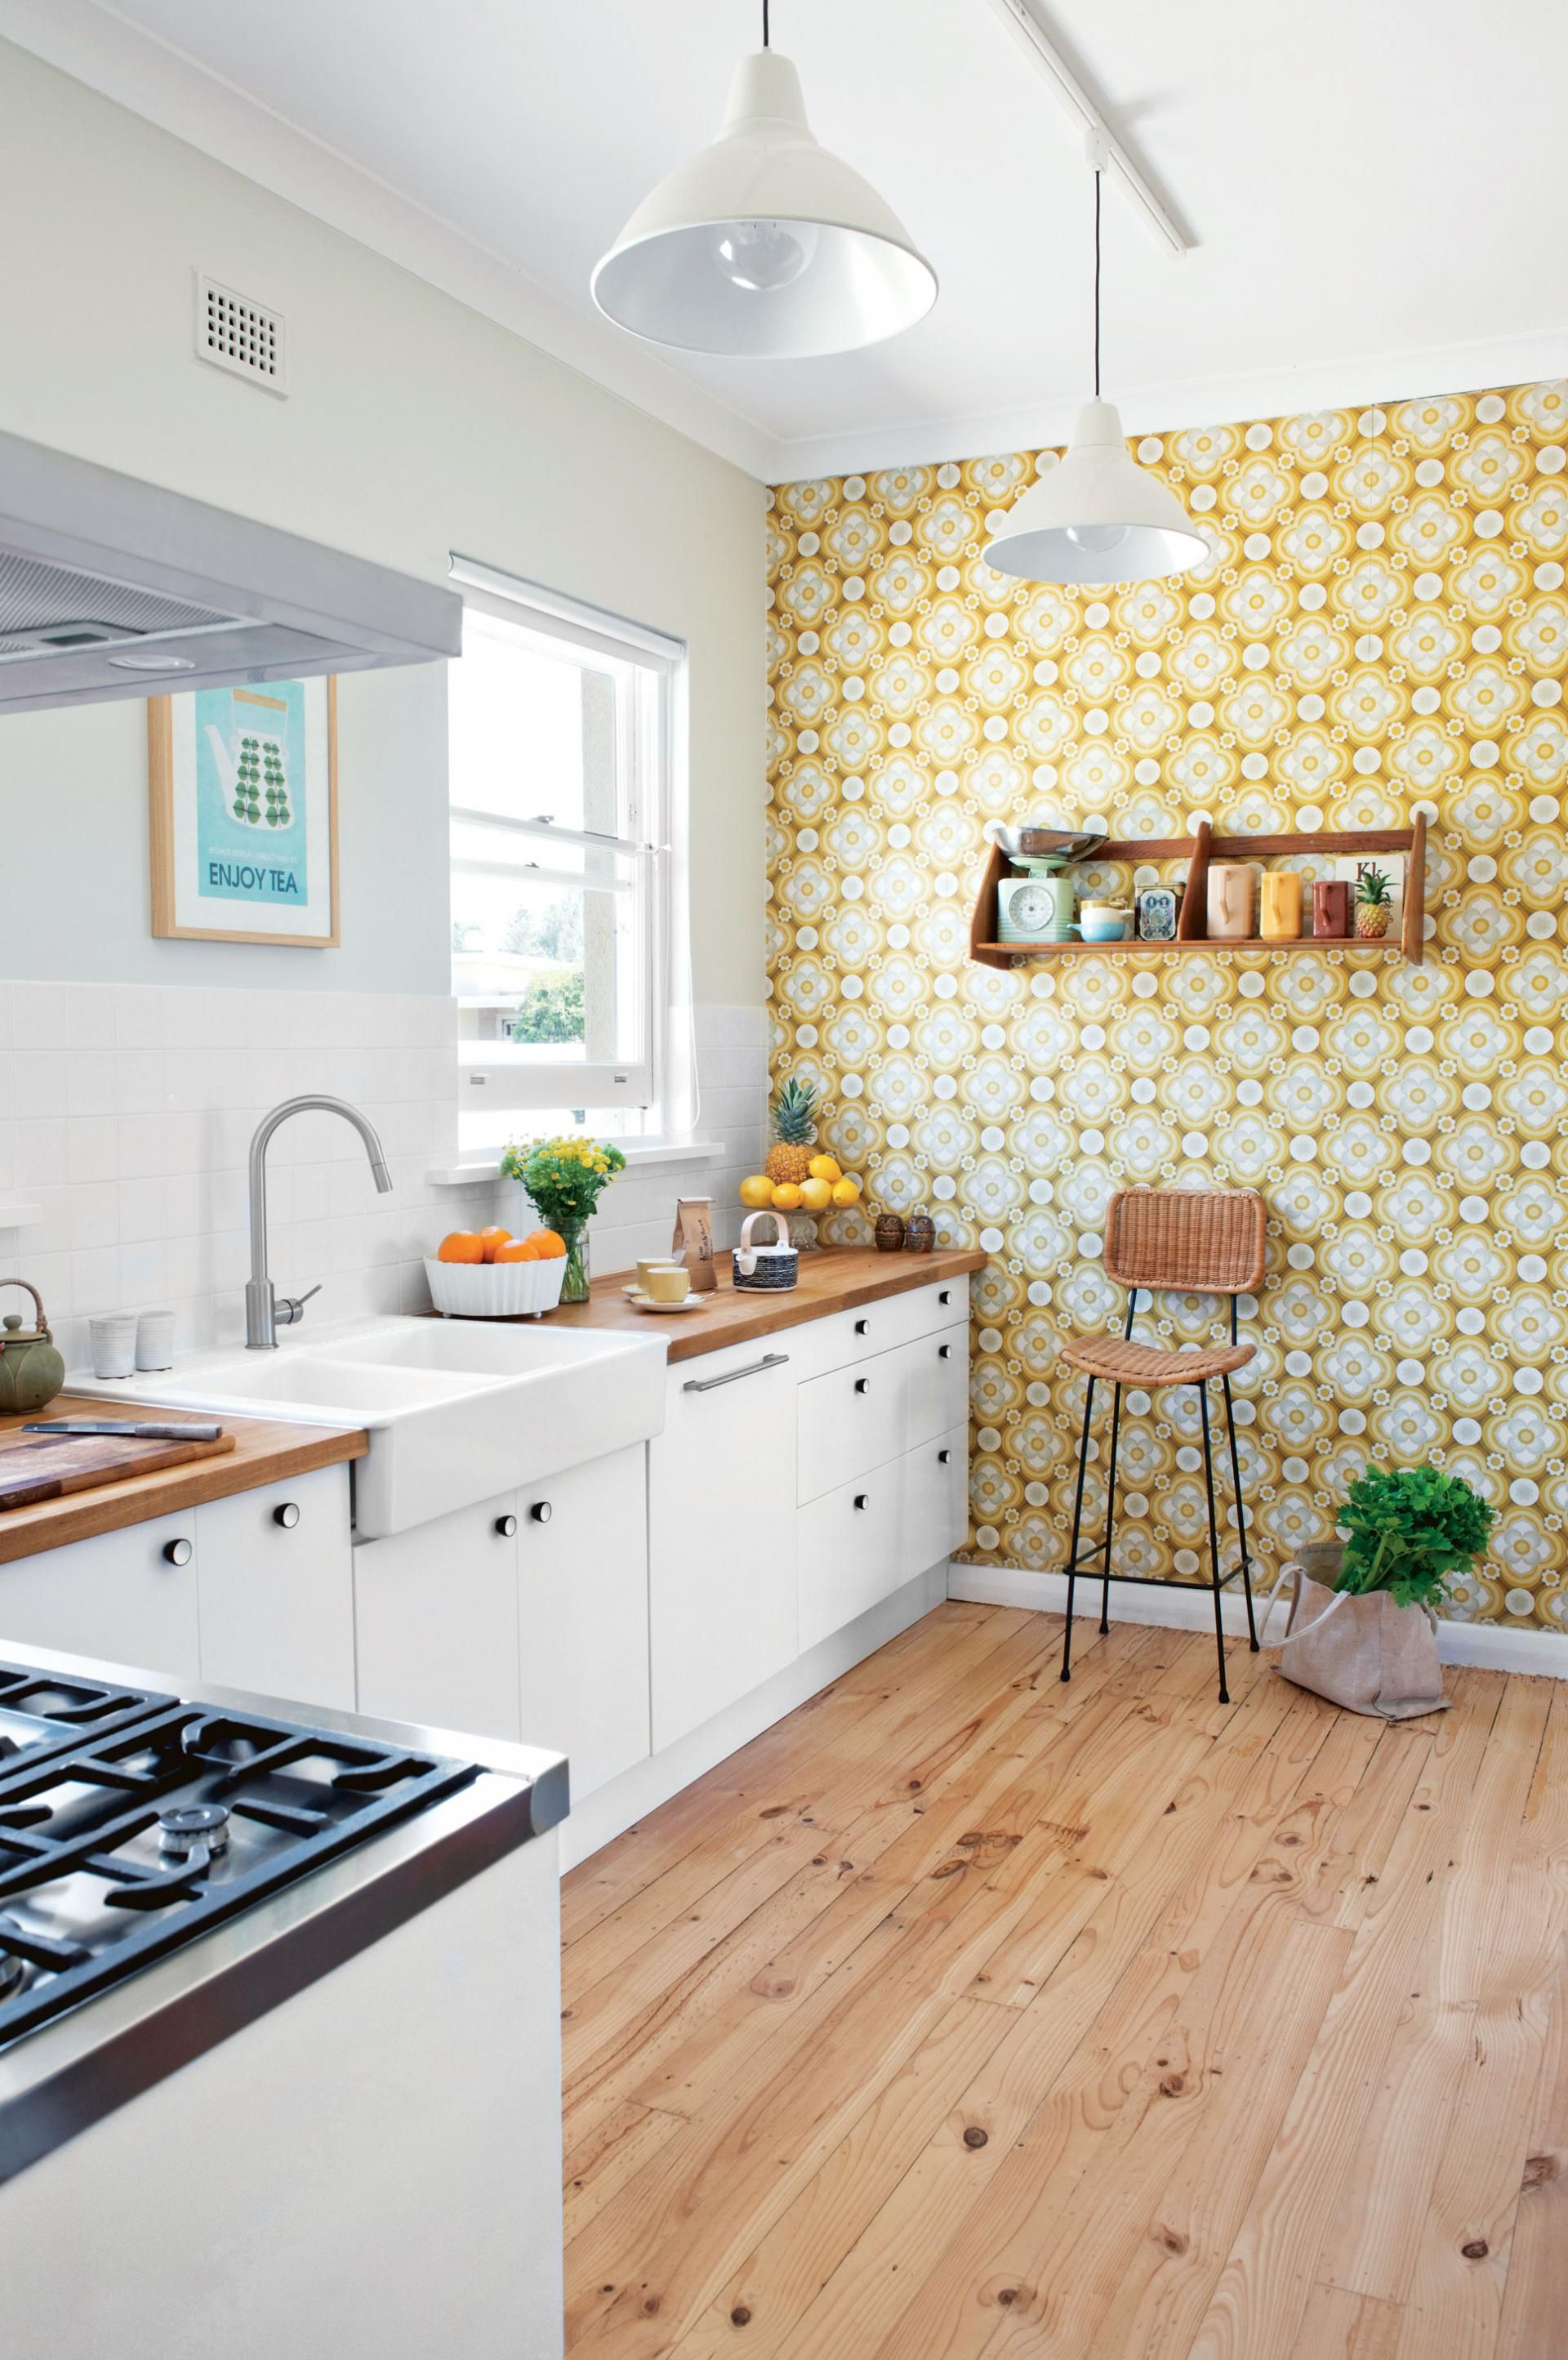 From 7 amazing kitchen transformations. This retrosavvy